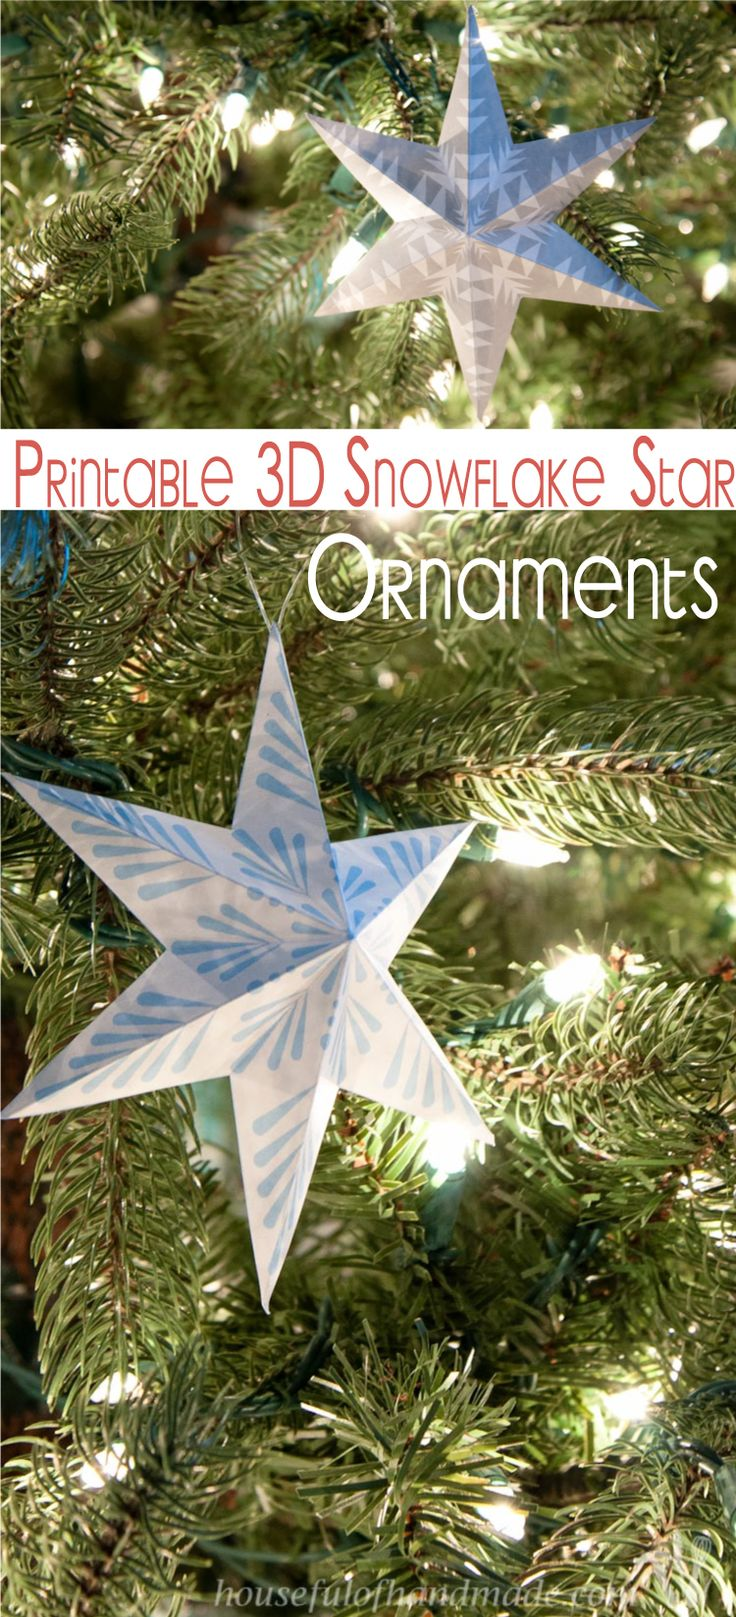 Newtown ct taking down christmas decorations - Trim The Tree With These Beautiful Printable 3d Snowflake Star Ornaments Easy To Print And